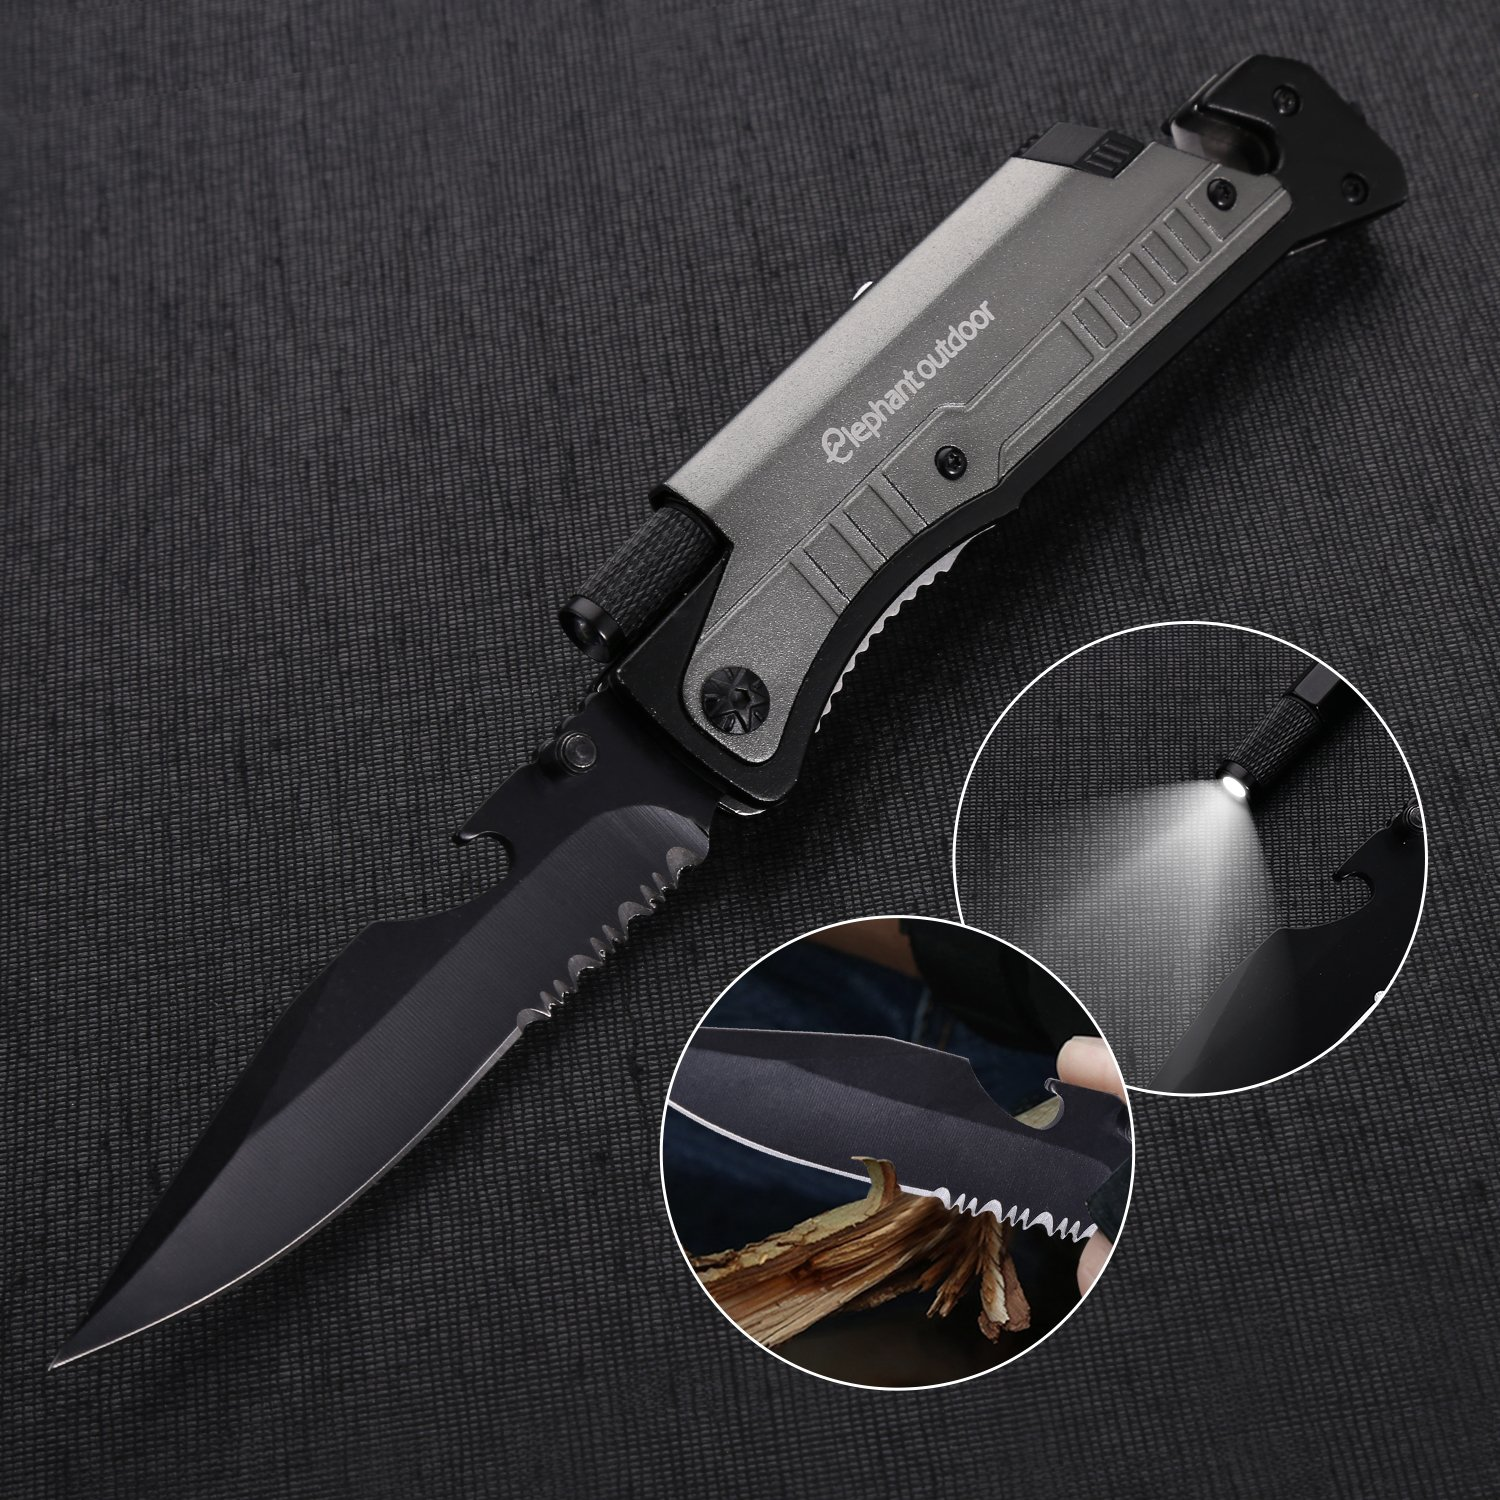 Survival Knife - Updated 7-in-1 Tactical Pocket Folding Knife with LED Flashlight, Glass Breaker, Seatbelt Cutter, Magnesium Fire Starter, Whistle and Bottle Opener, Best Stainless Steel Camping Gear